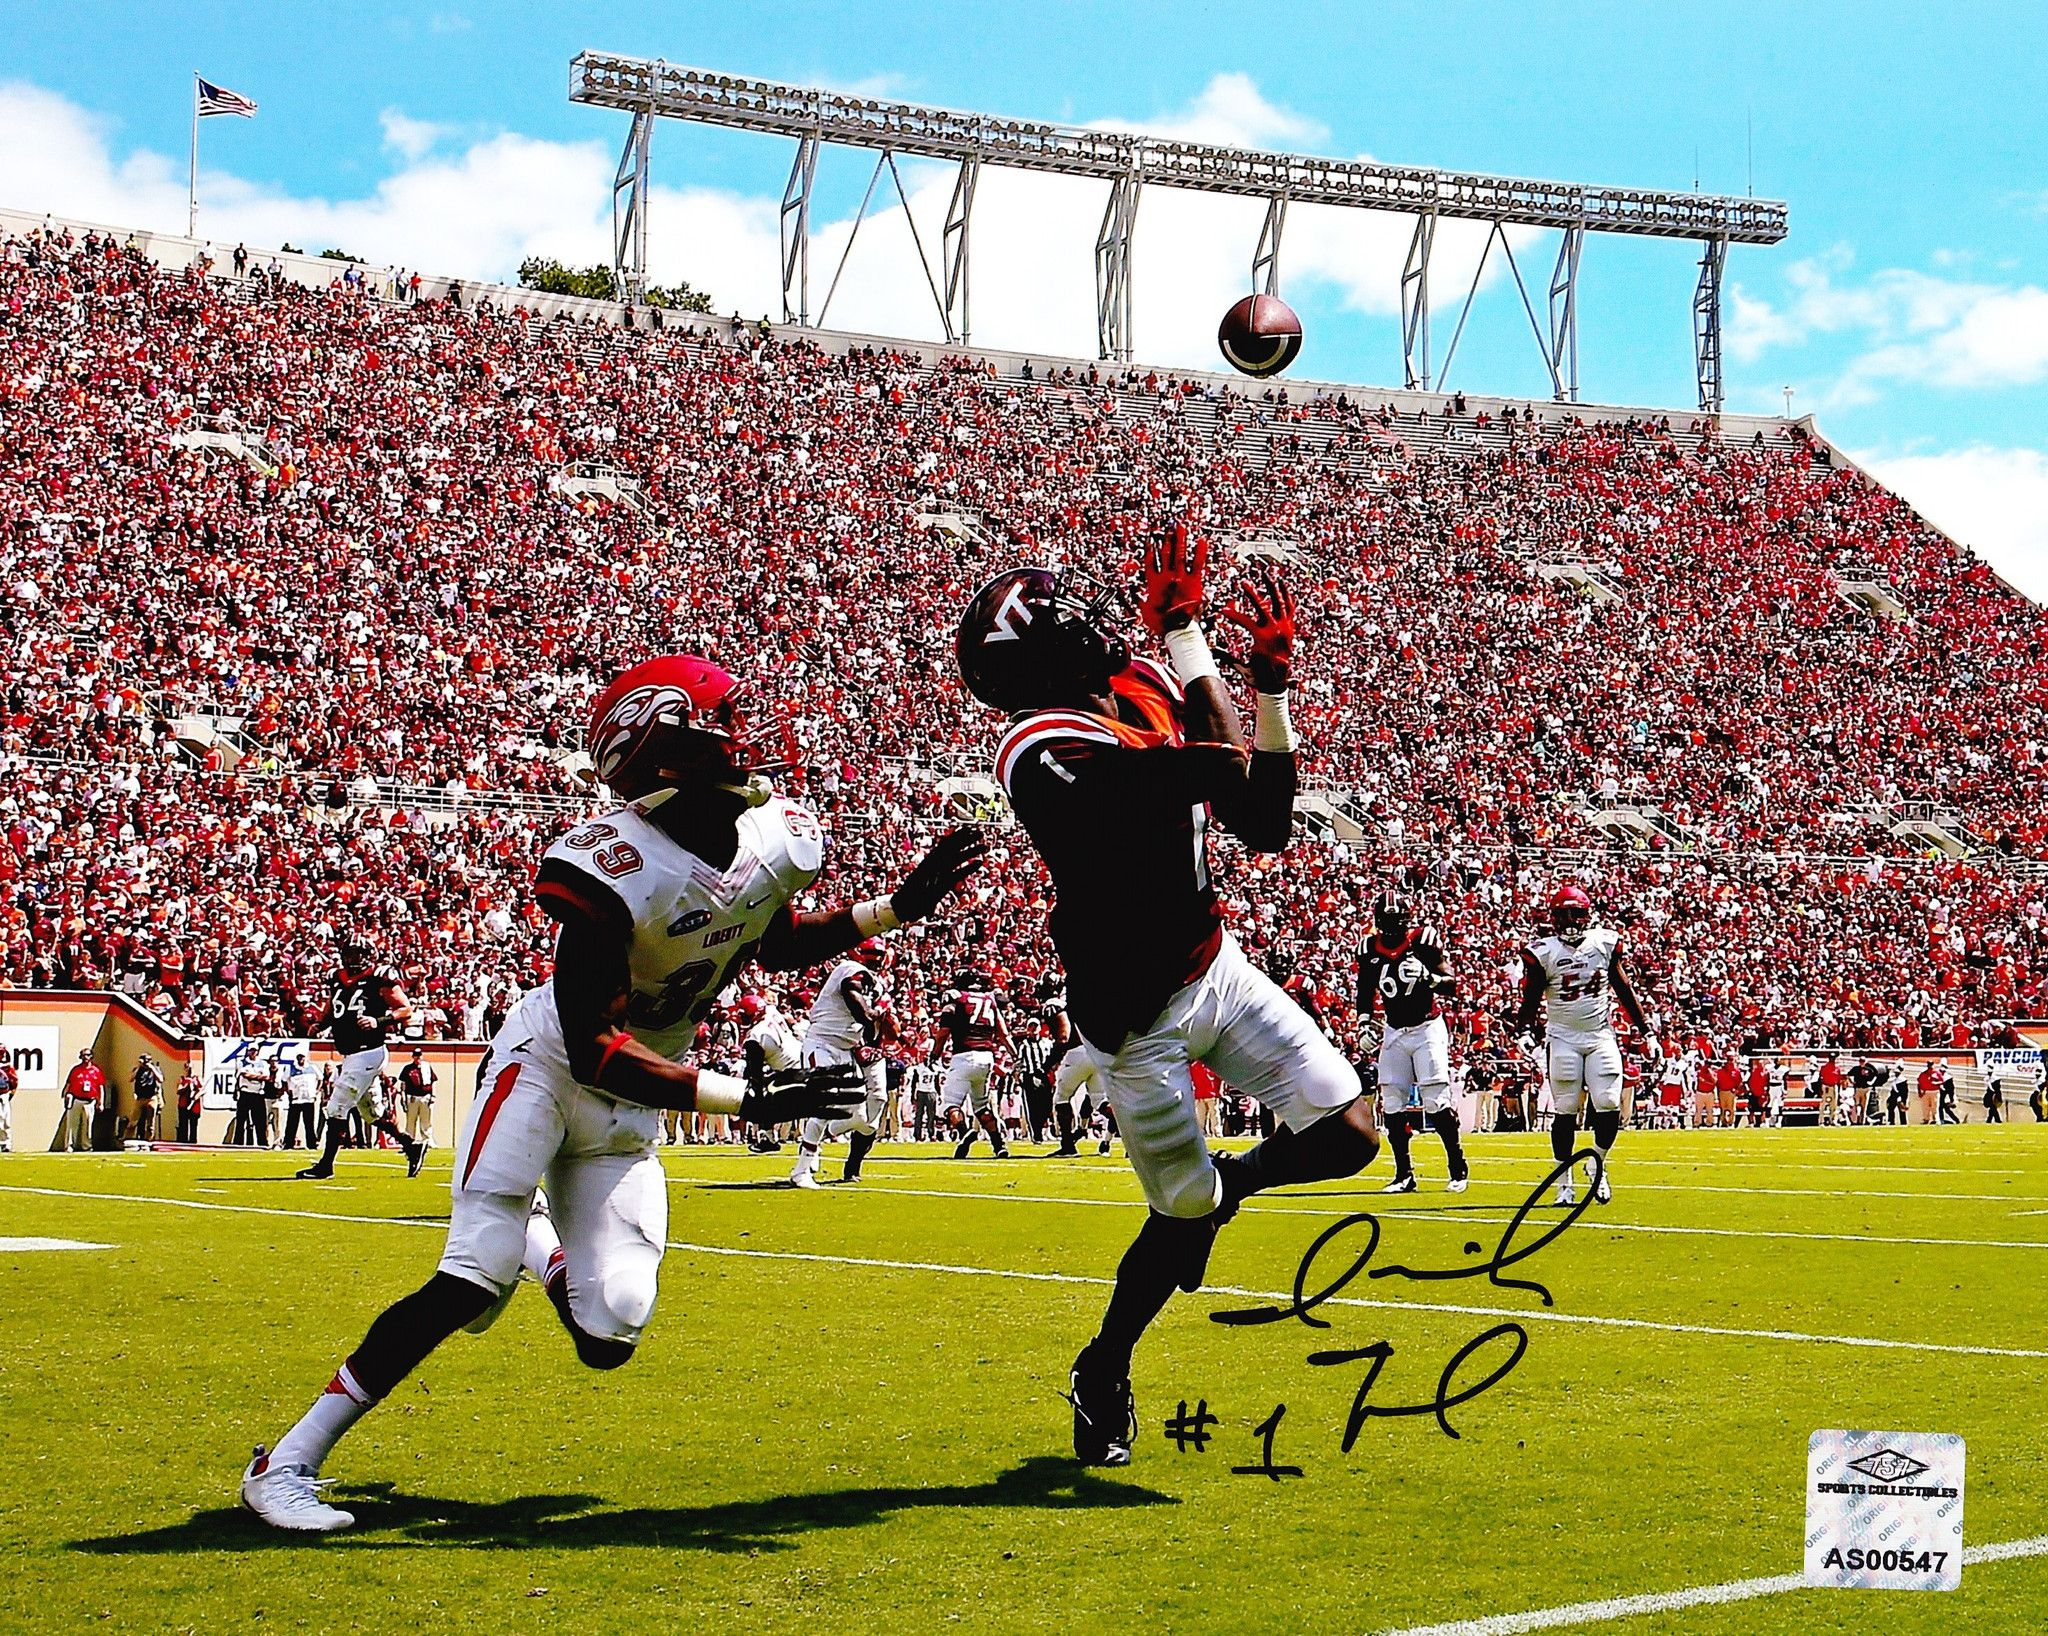 Virginia Tech Vt Hokies Isaiah Ford Signed Autographed 8x10 Photo